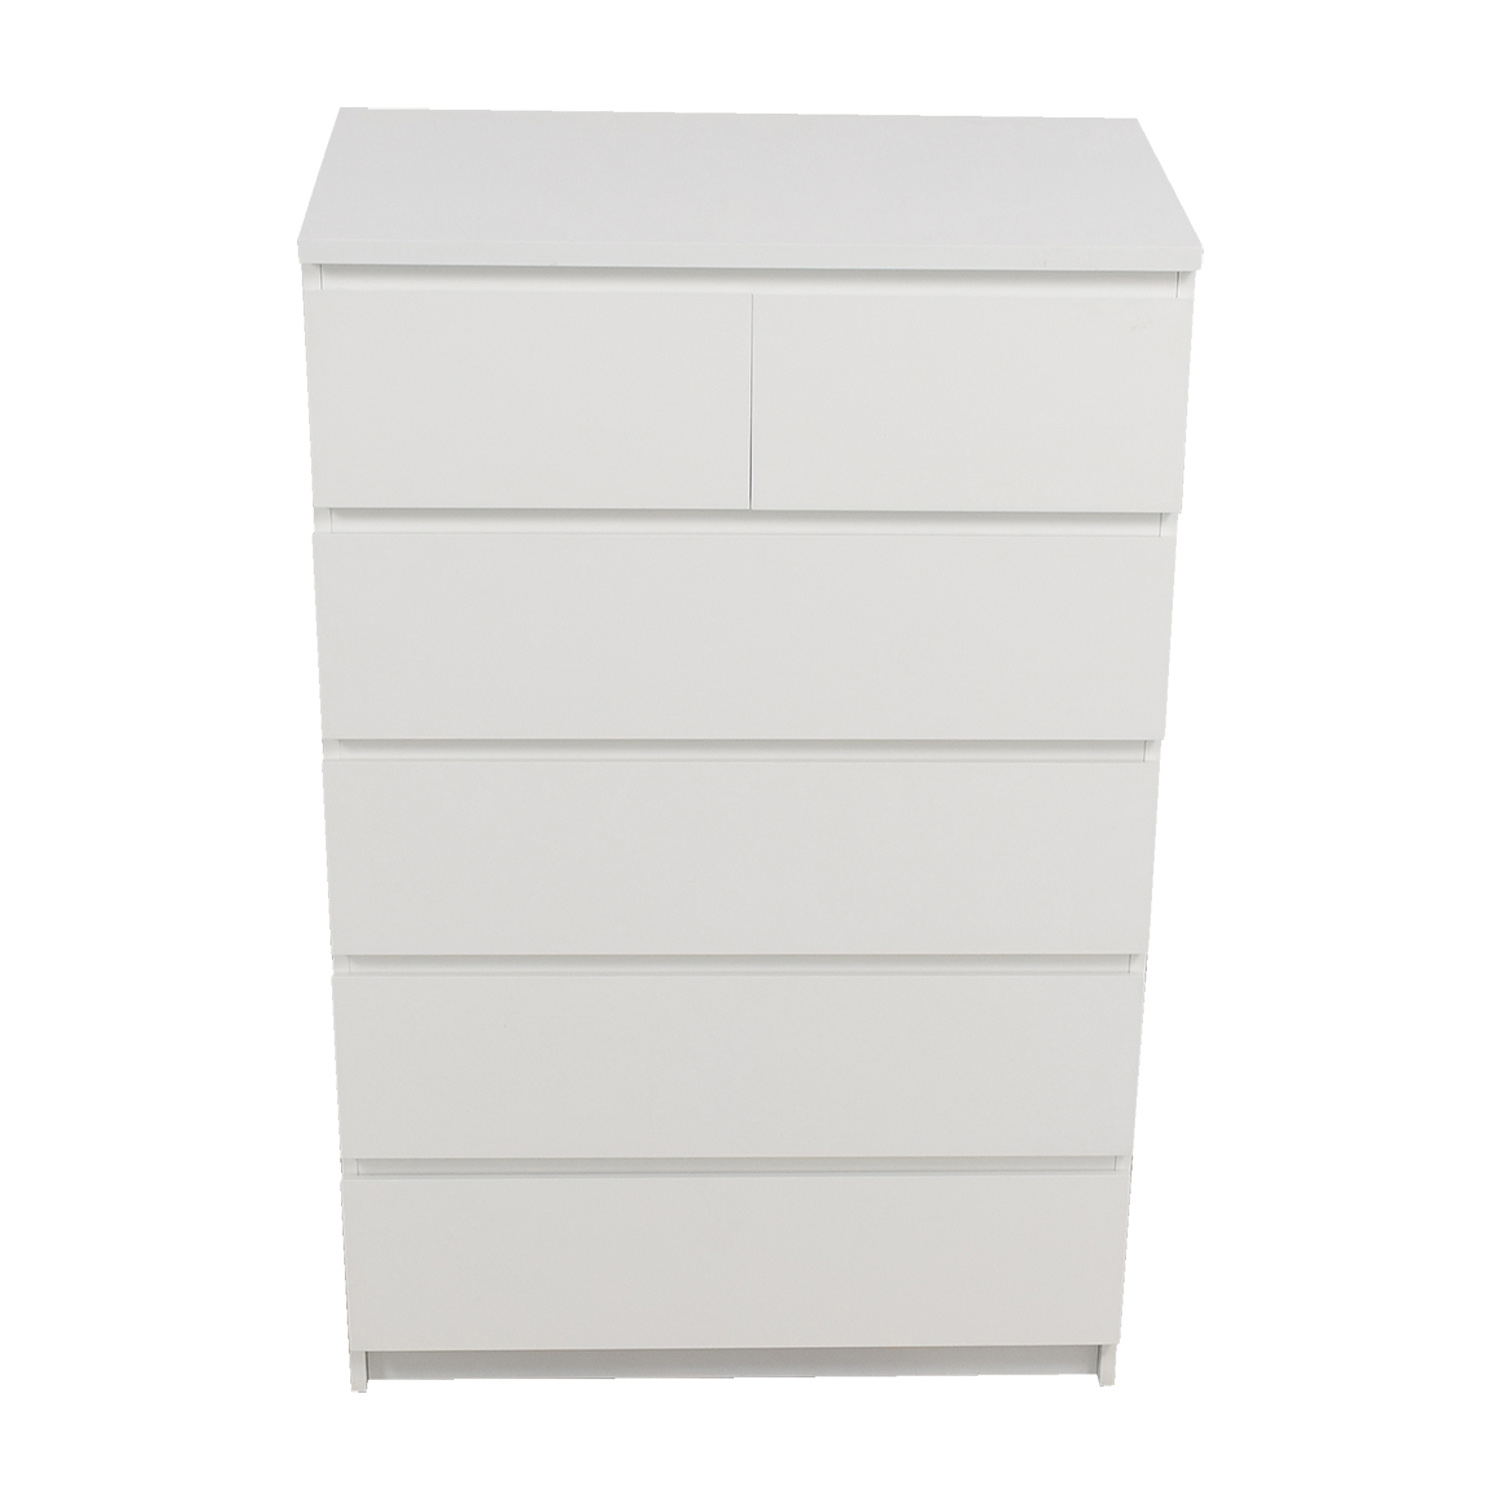 IKEA IKEA White Six-Drawer Dresser used